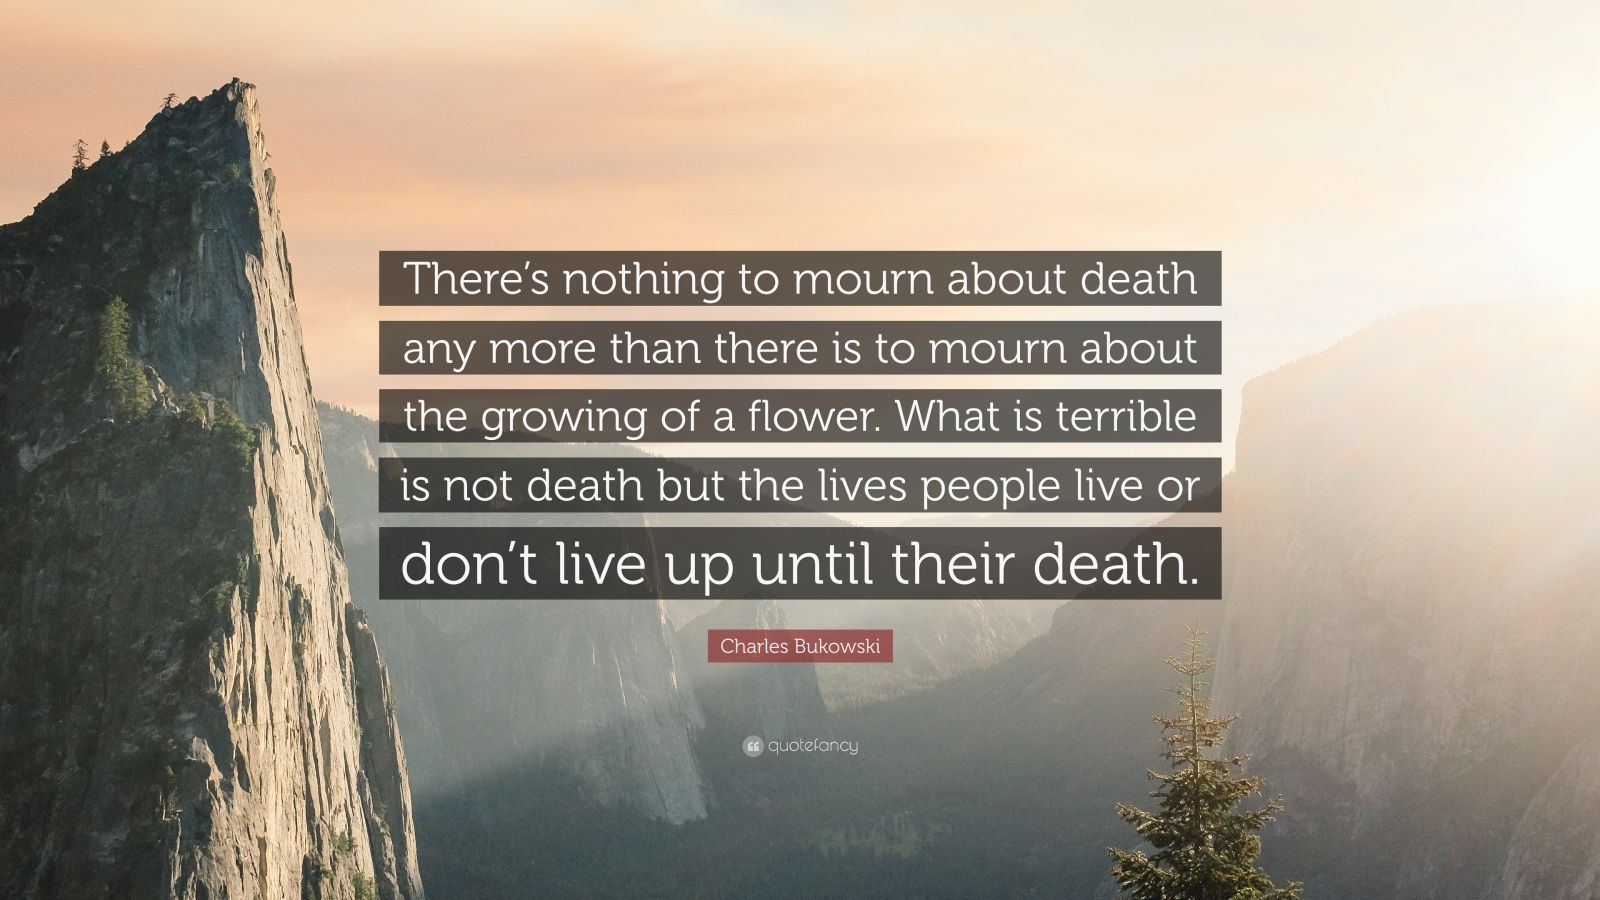 """Charles Bukowski Quote: """"There's nothing to mourn about death any more than there is to mourn about the growing of a flower. What is terrible is not death but the lives people live or don't live up until their death."""""""